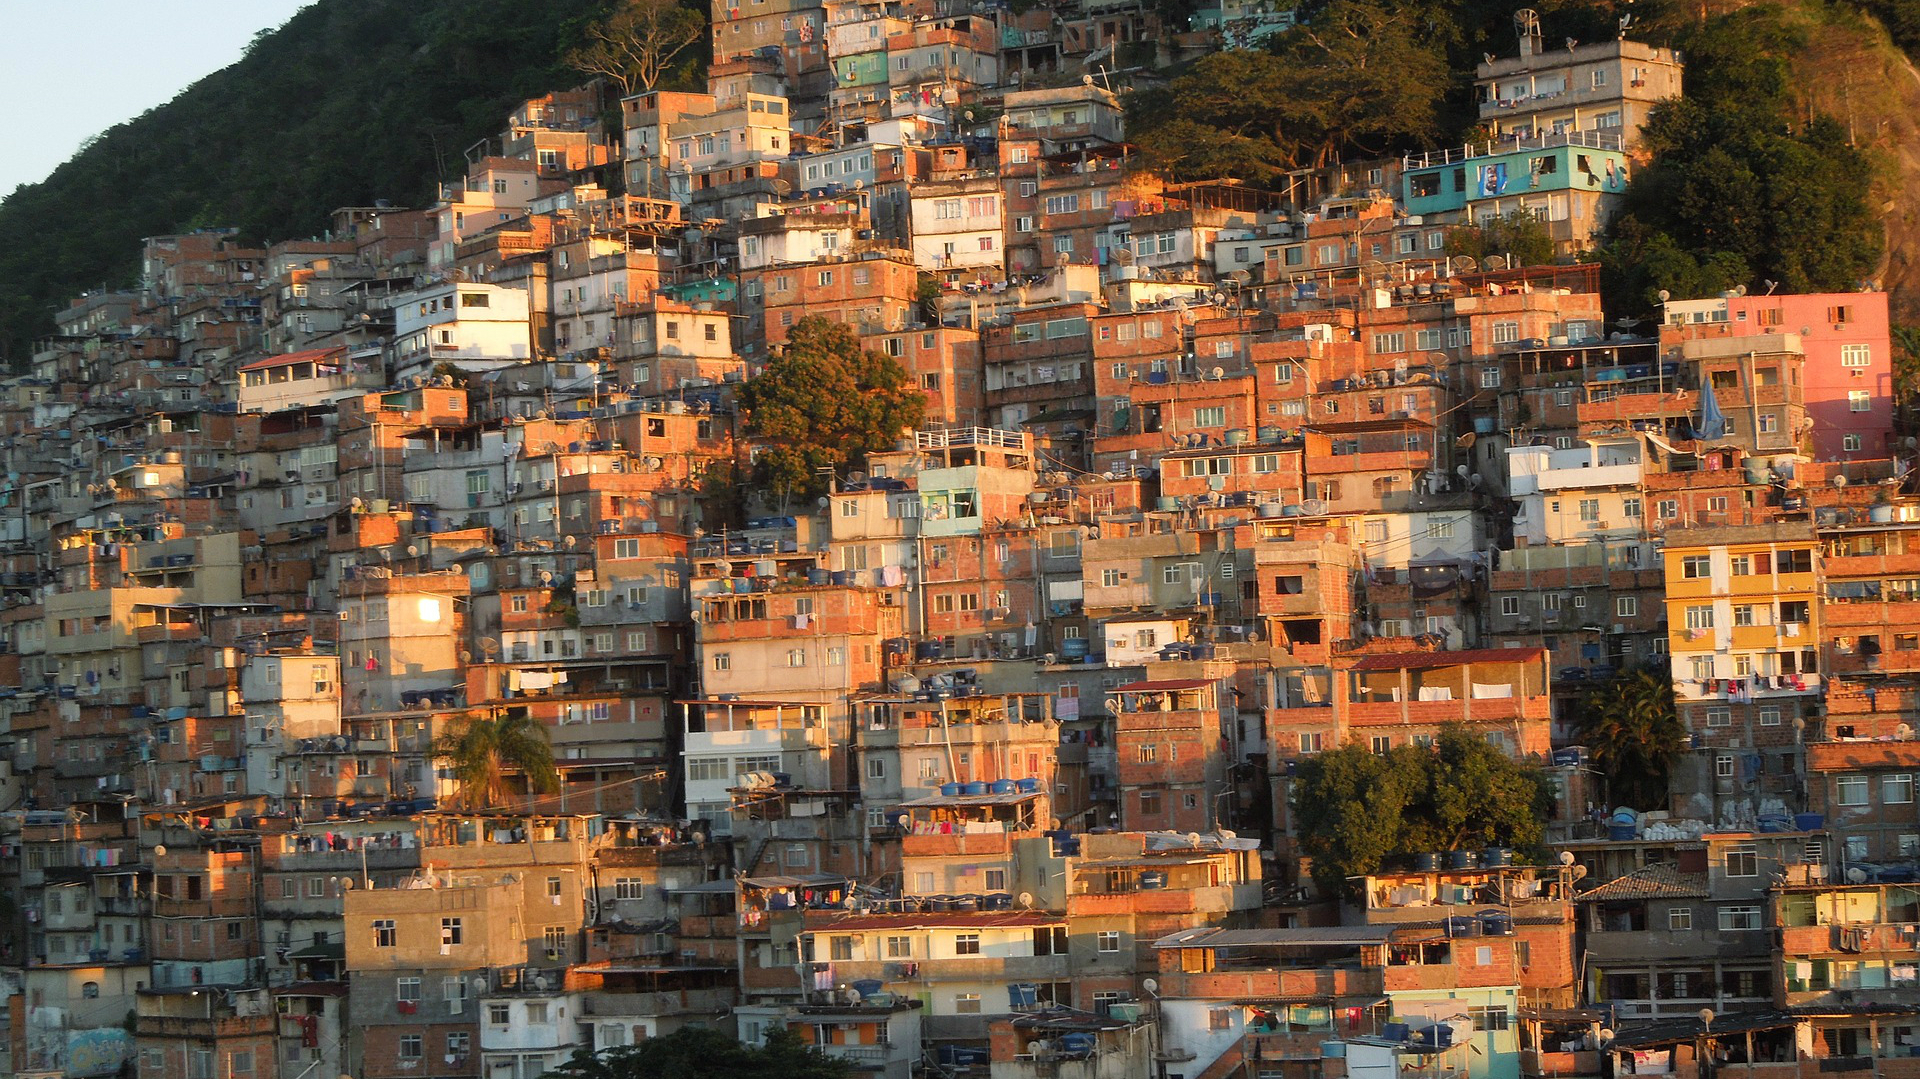 Houses stacked on the hillside in a Brazilian slum